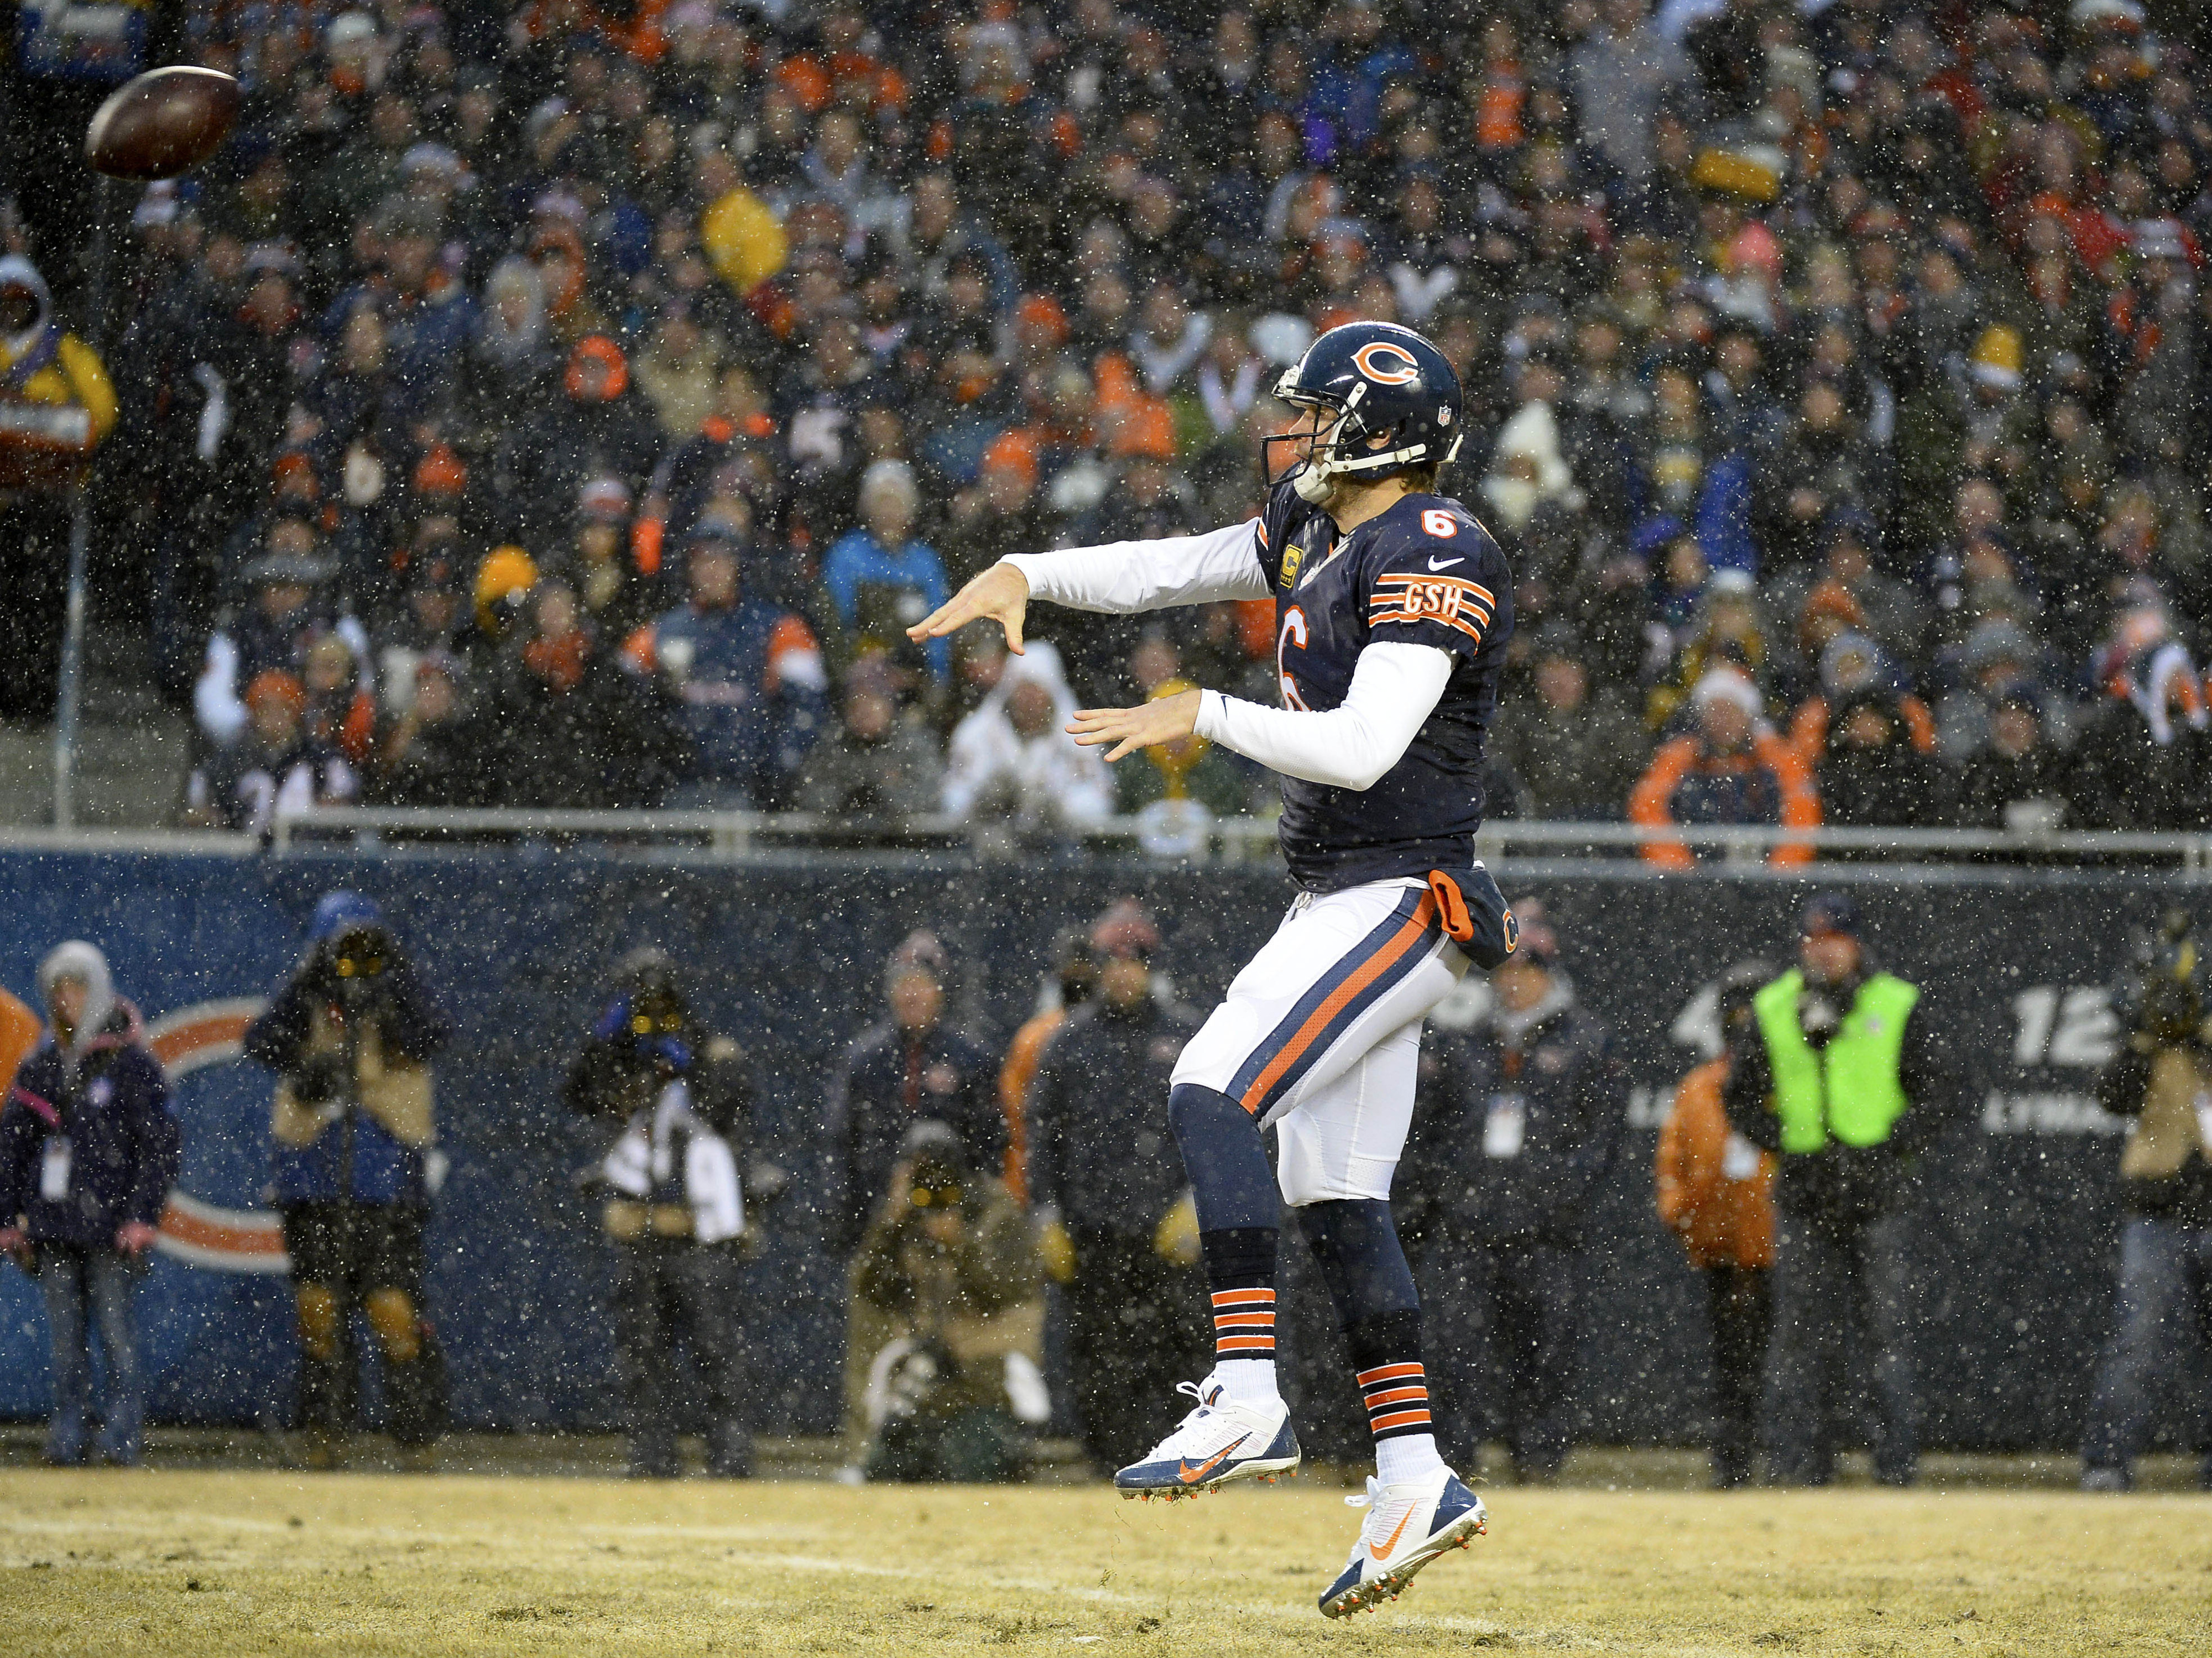 The Bears bet big on Jay Cutler with new contract extension